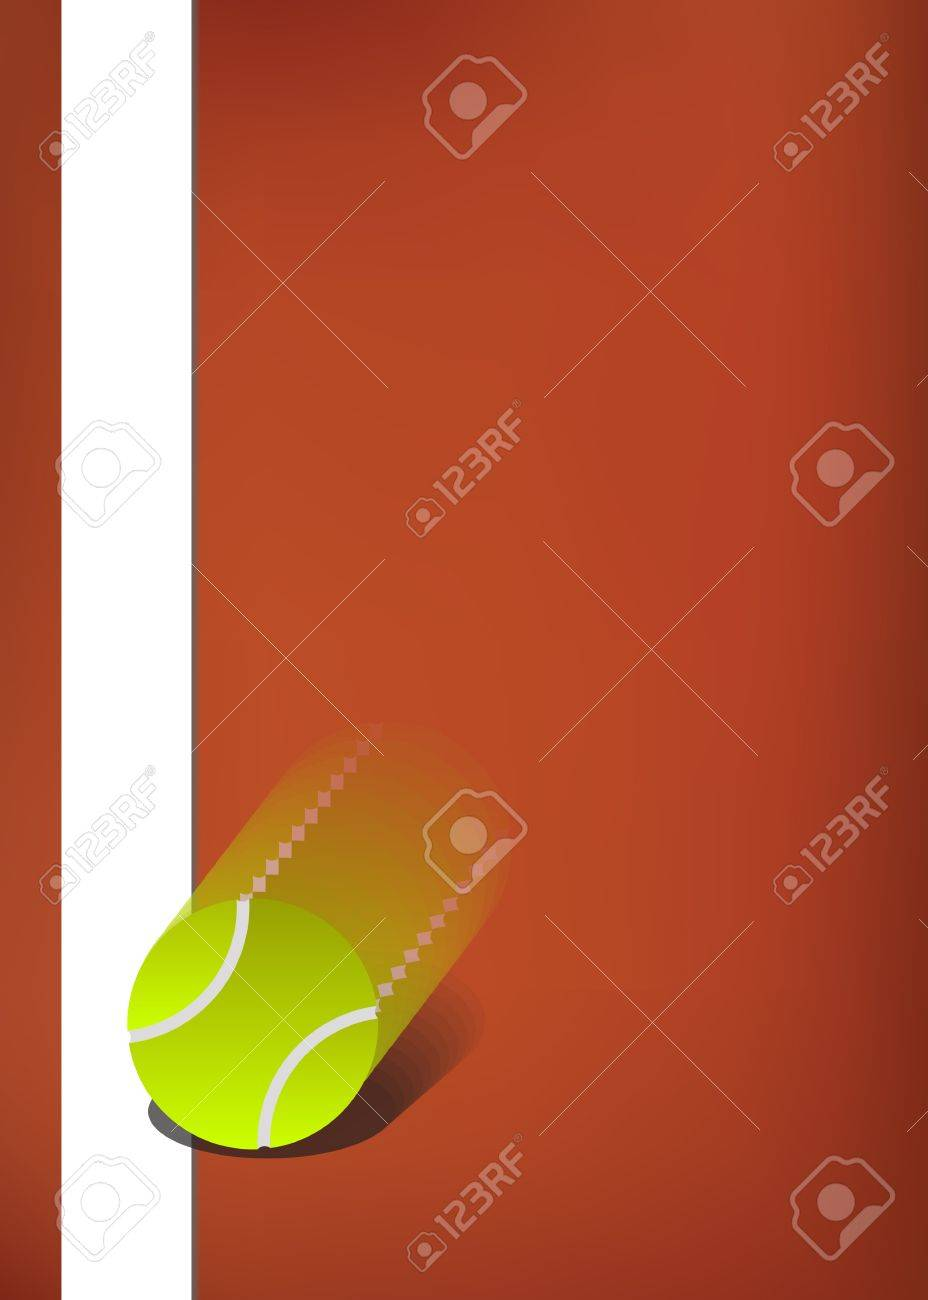 Tennis background, clay court with ball bouncing on the line Stock Vector - 20068329